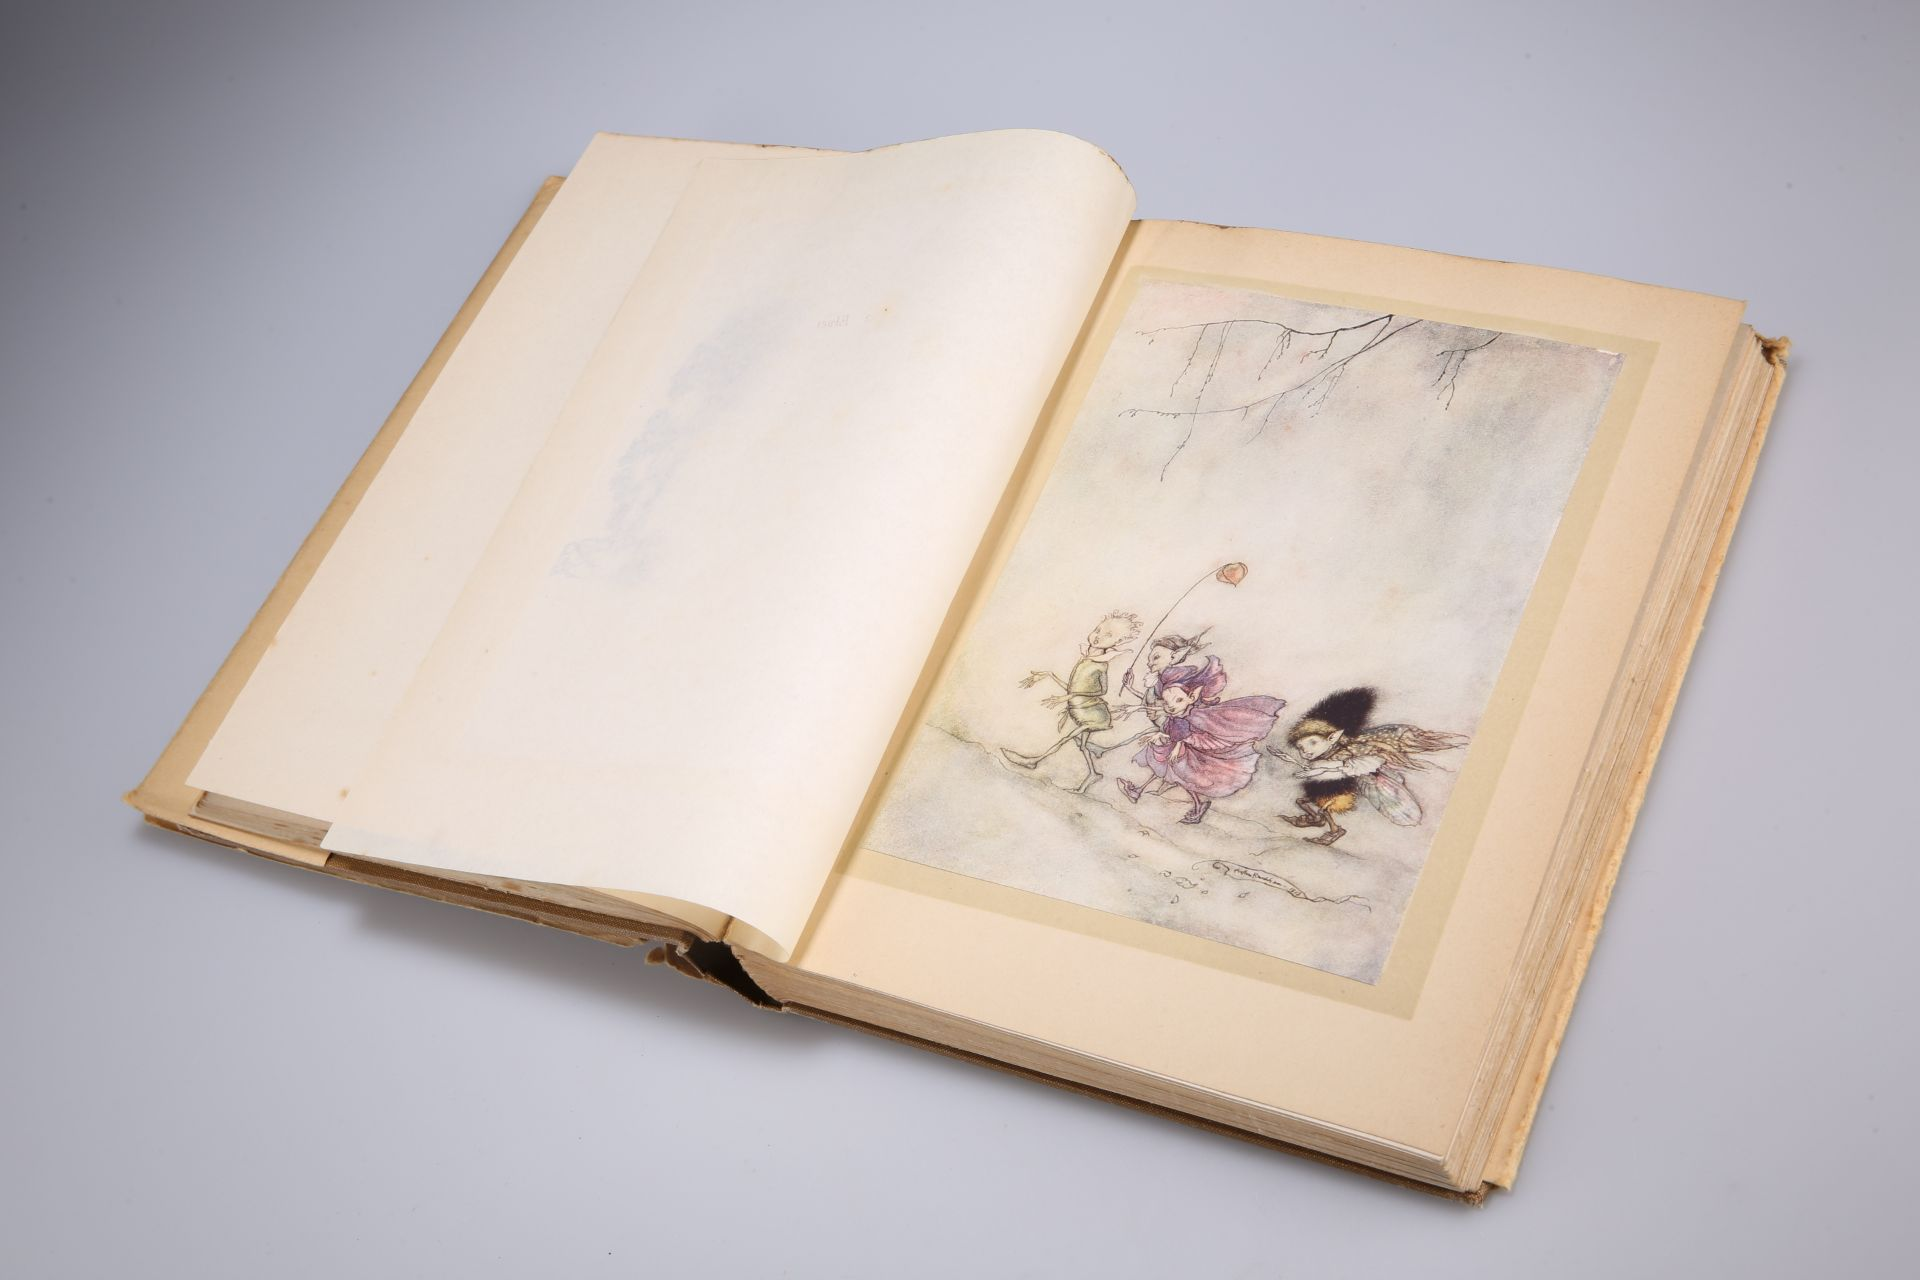 ARTHUR RACKHAM'S BOOK OF PICTURES, with an introduction by Sir Arthur Quiller-Couch, 1923 edition, - Bild 2 aus 2